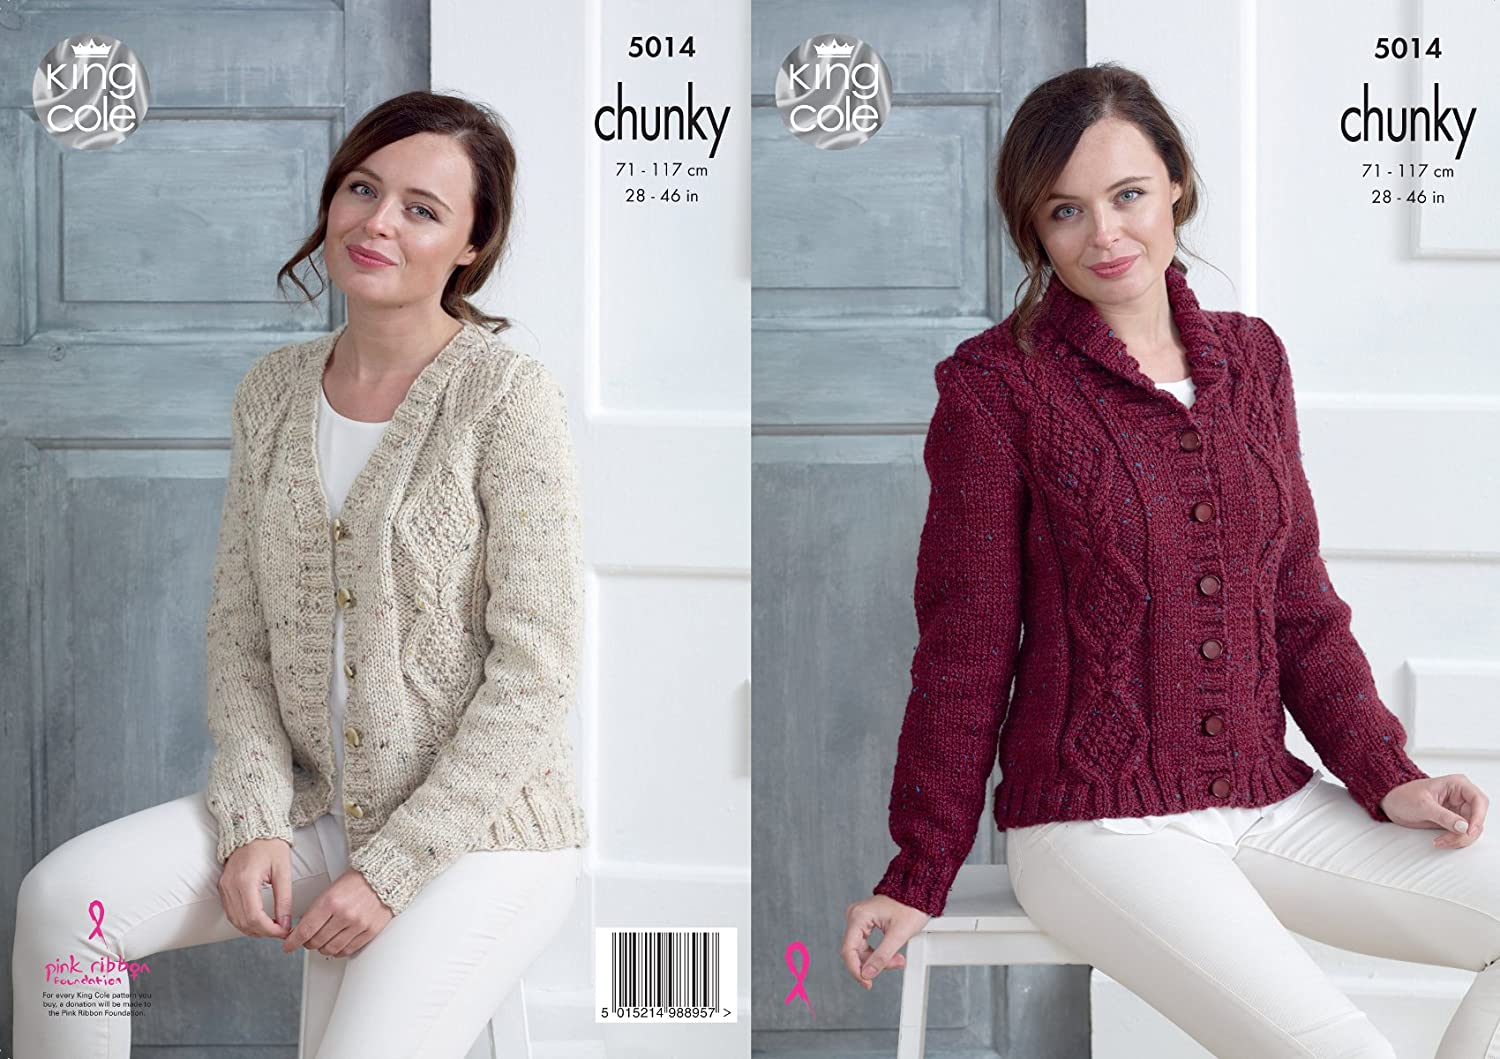 King Cole Ladies Chunky Knitting Pattern Womens Cabled V Neck or Collar Cardigan (5014)